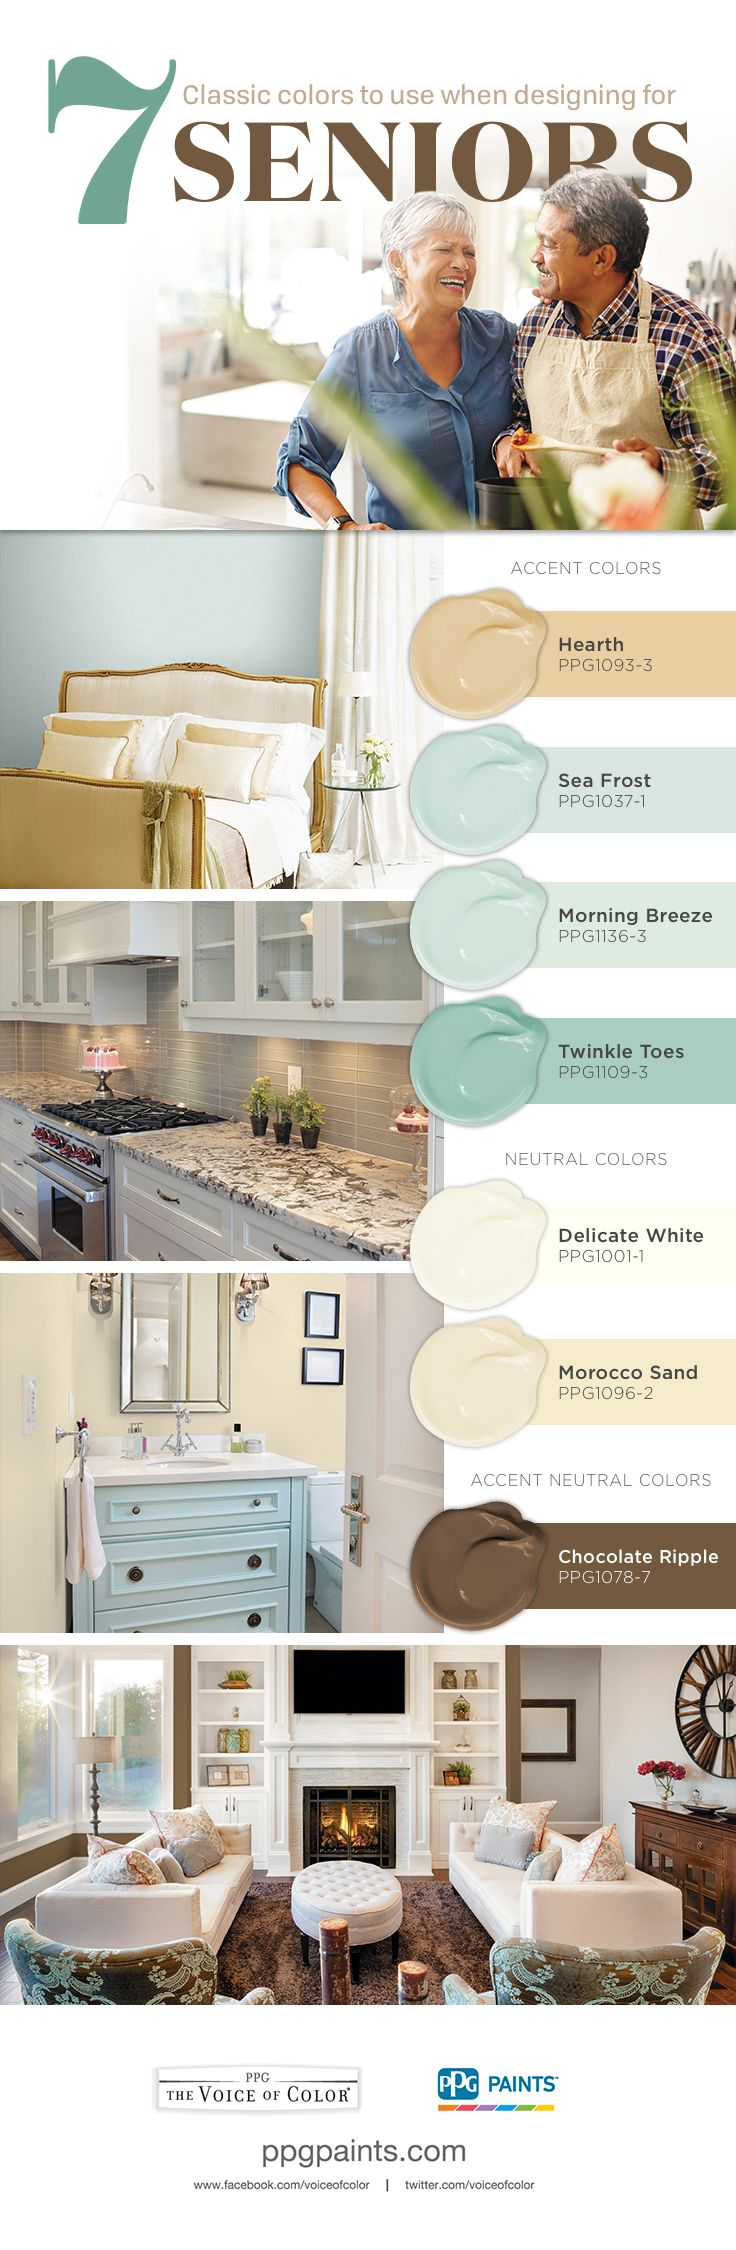 262 best ppg paint images on pinterest ppg paint colors Classic home paint colors